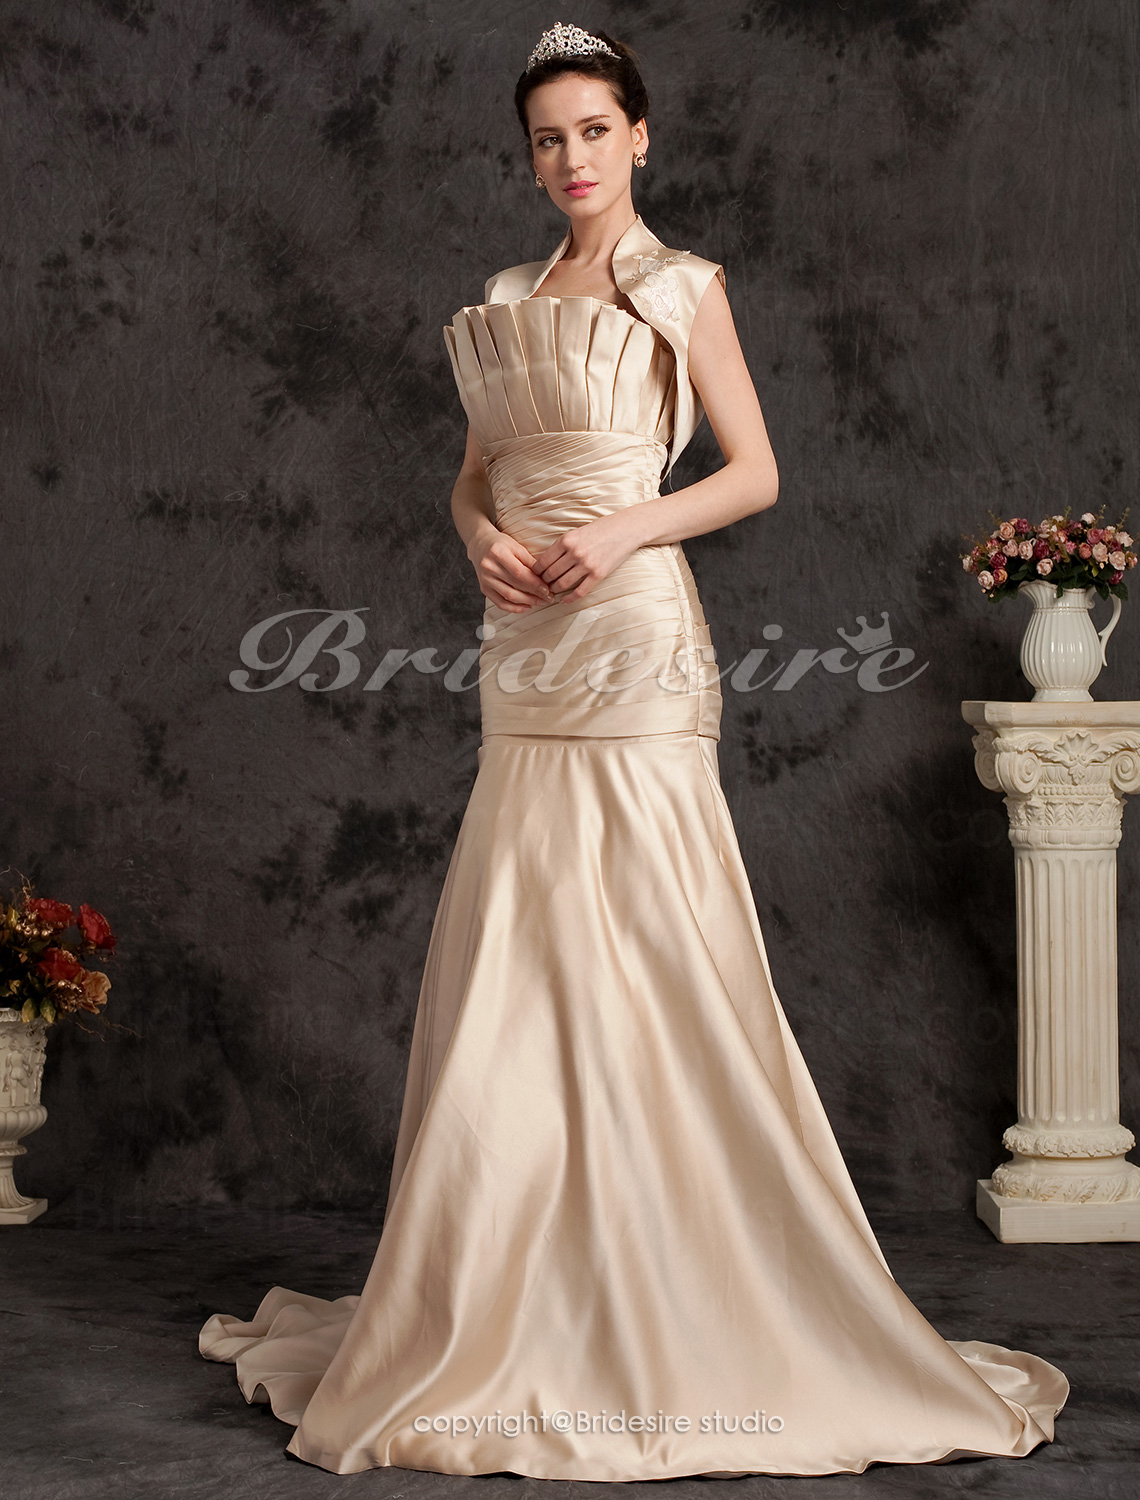 Mermaid/Trumpet Satin Court Train Strapless Wedding Dress with A Wrap